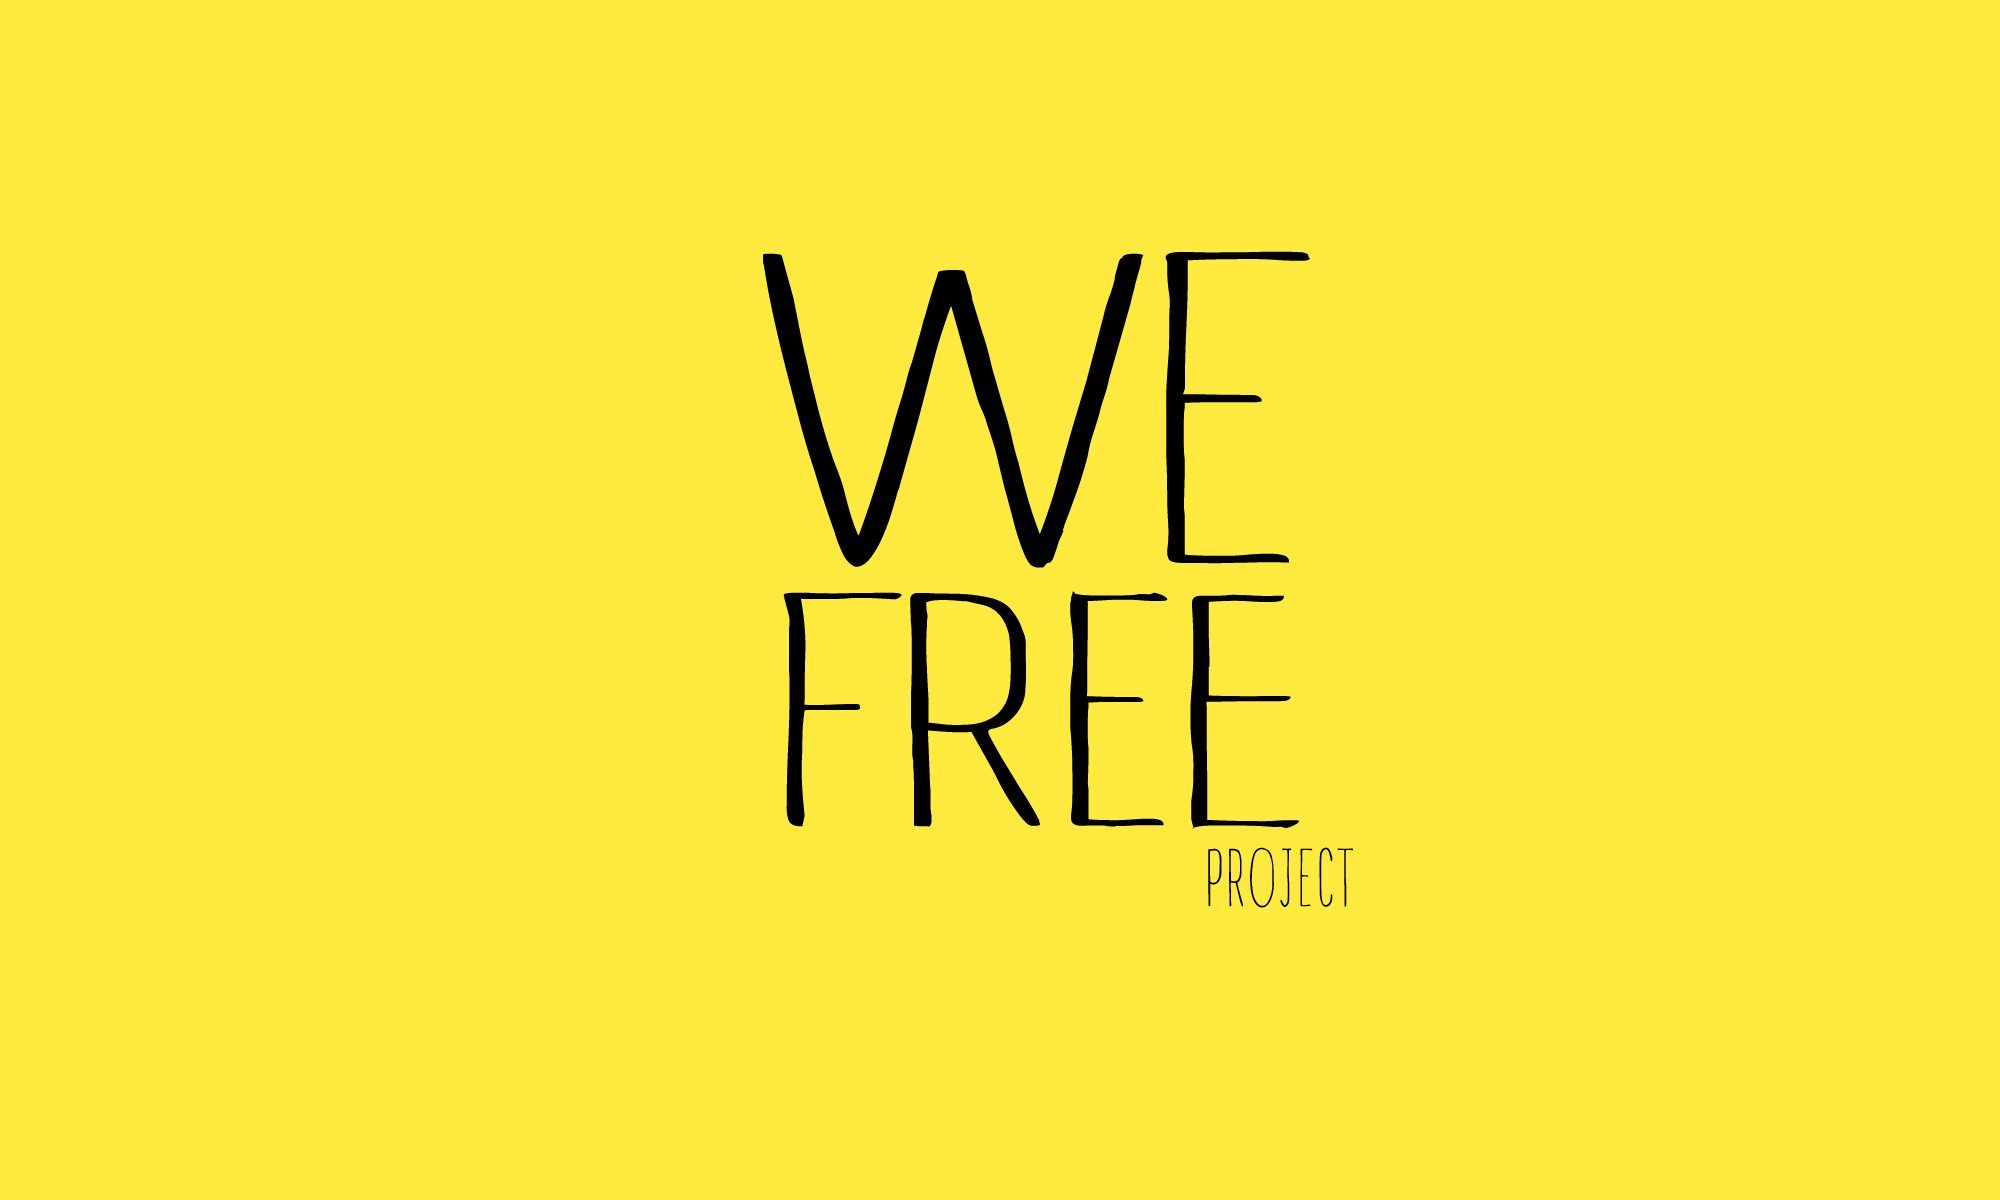 we free project